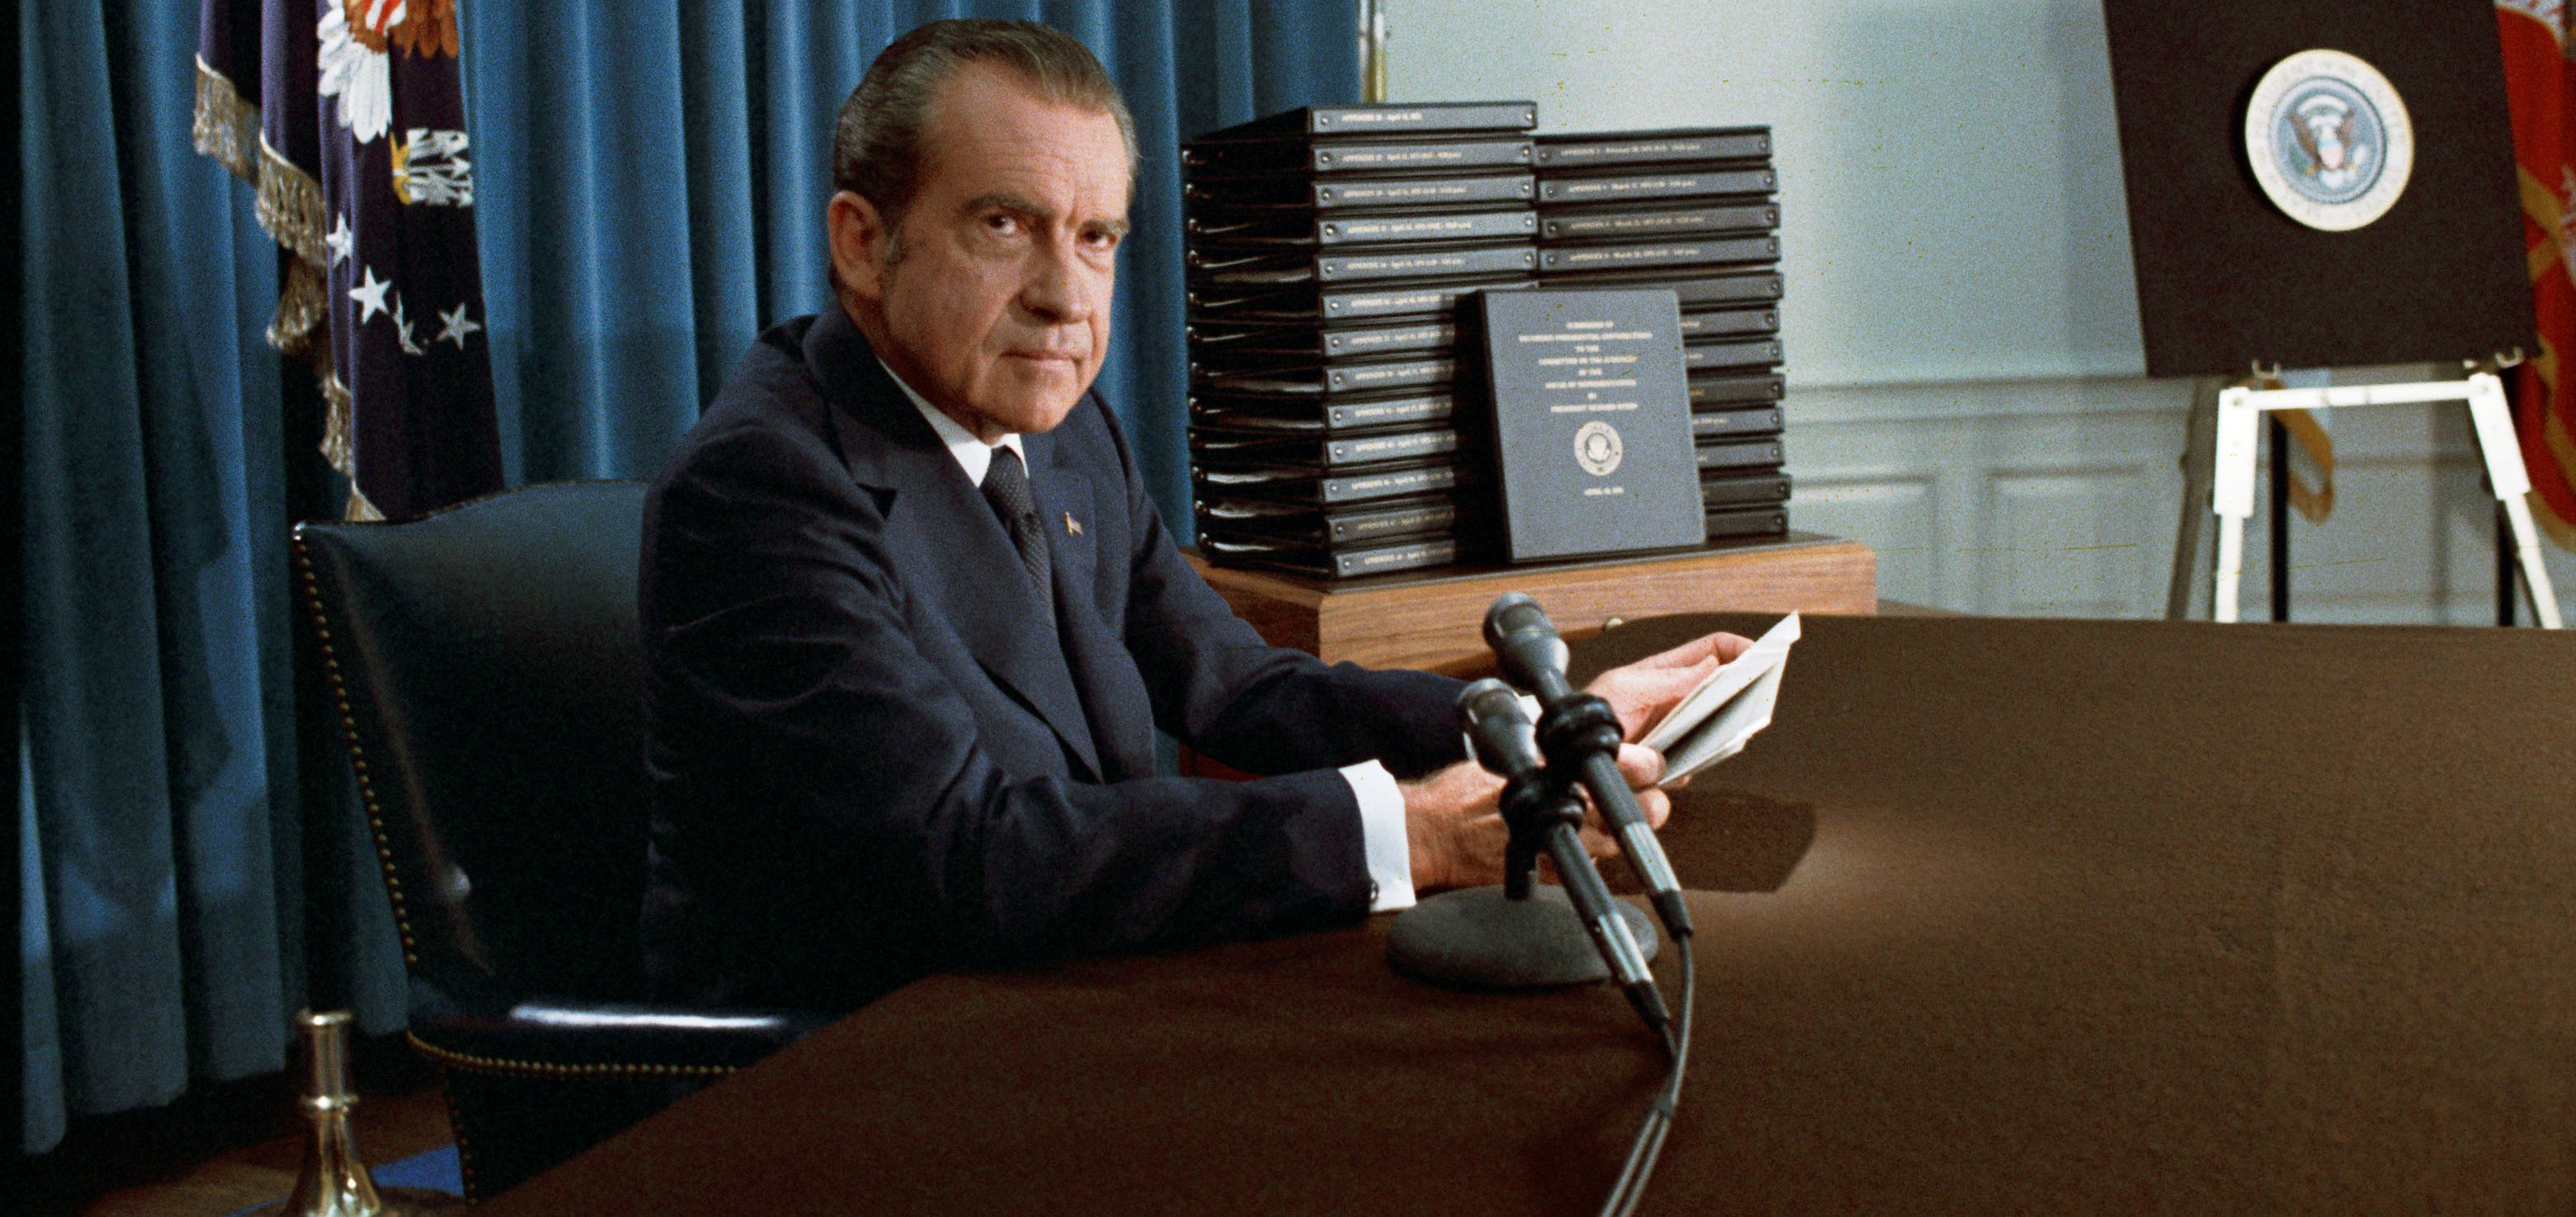 US President Richard Nixon, April 1974 (Photo: Wikimedia/National Archives & Records Administration)